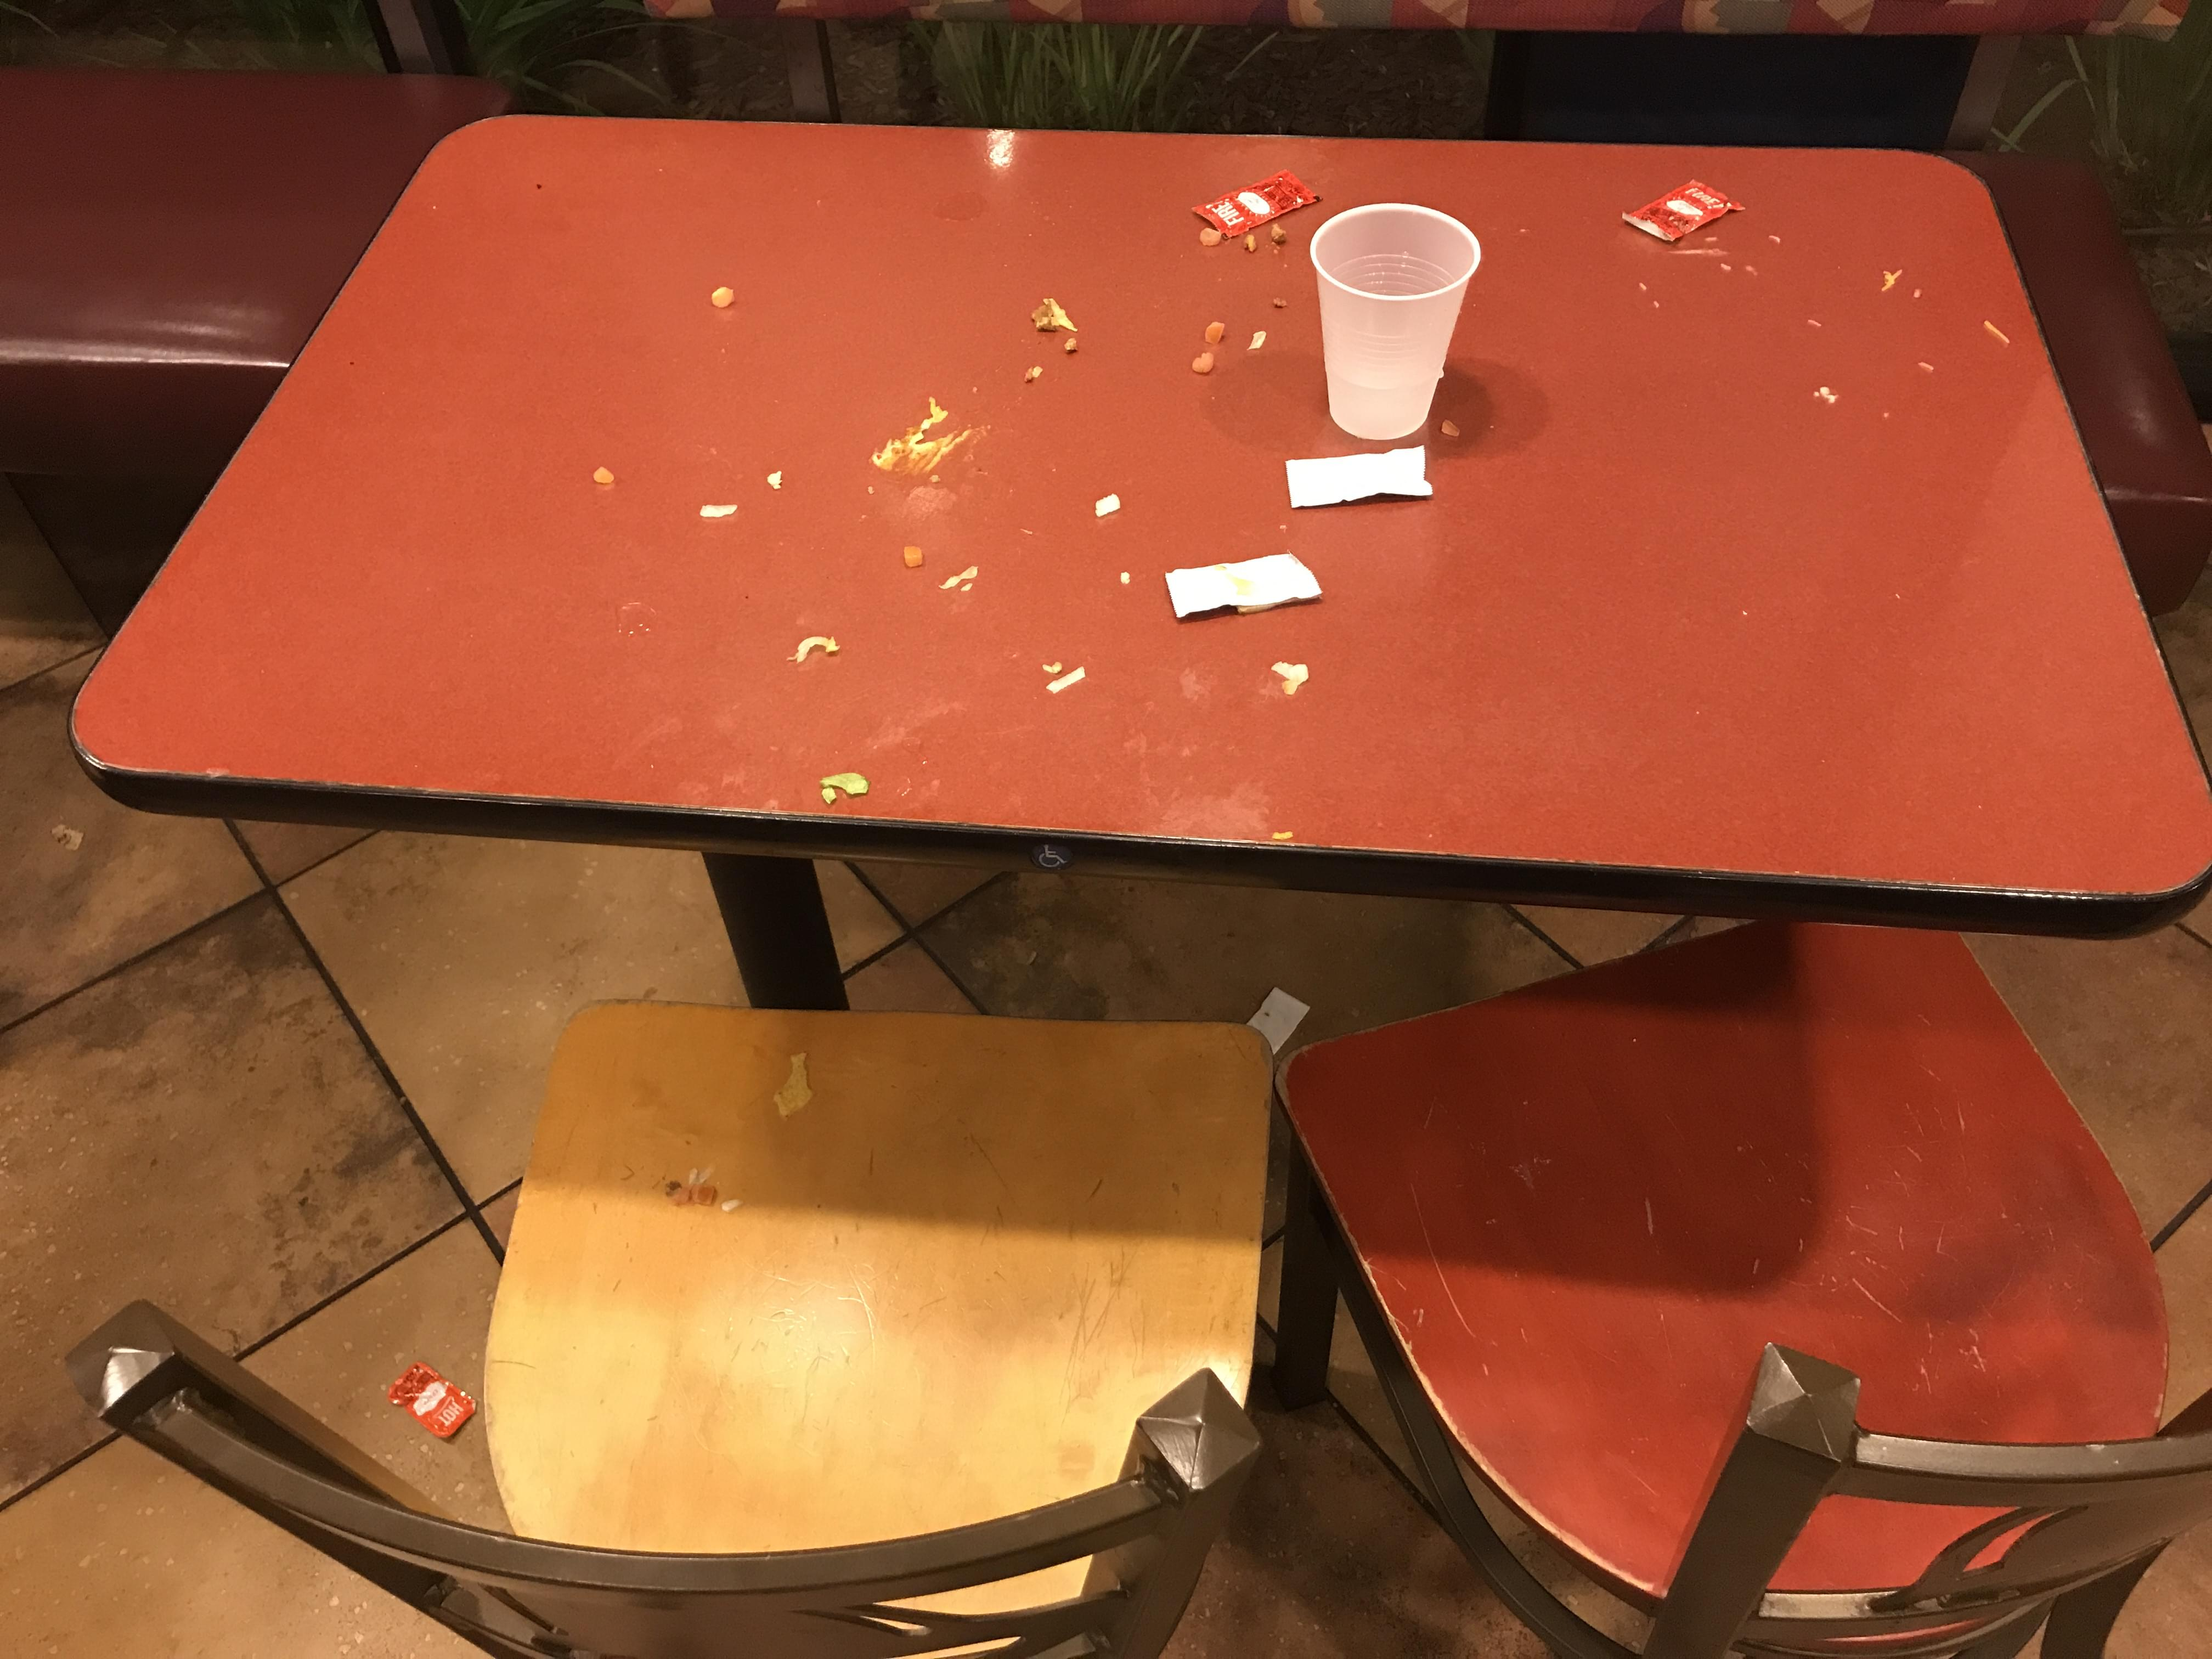 Post Concert Mess Left On The Table At Taco Bell In San Luis Obispo